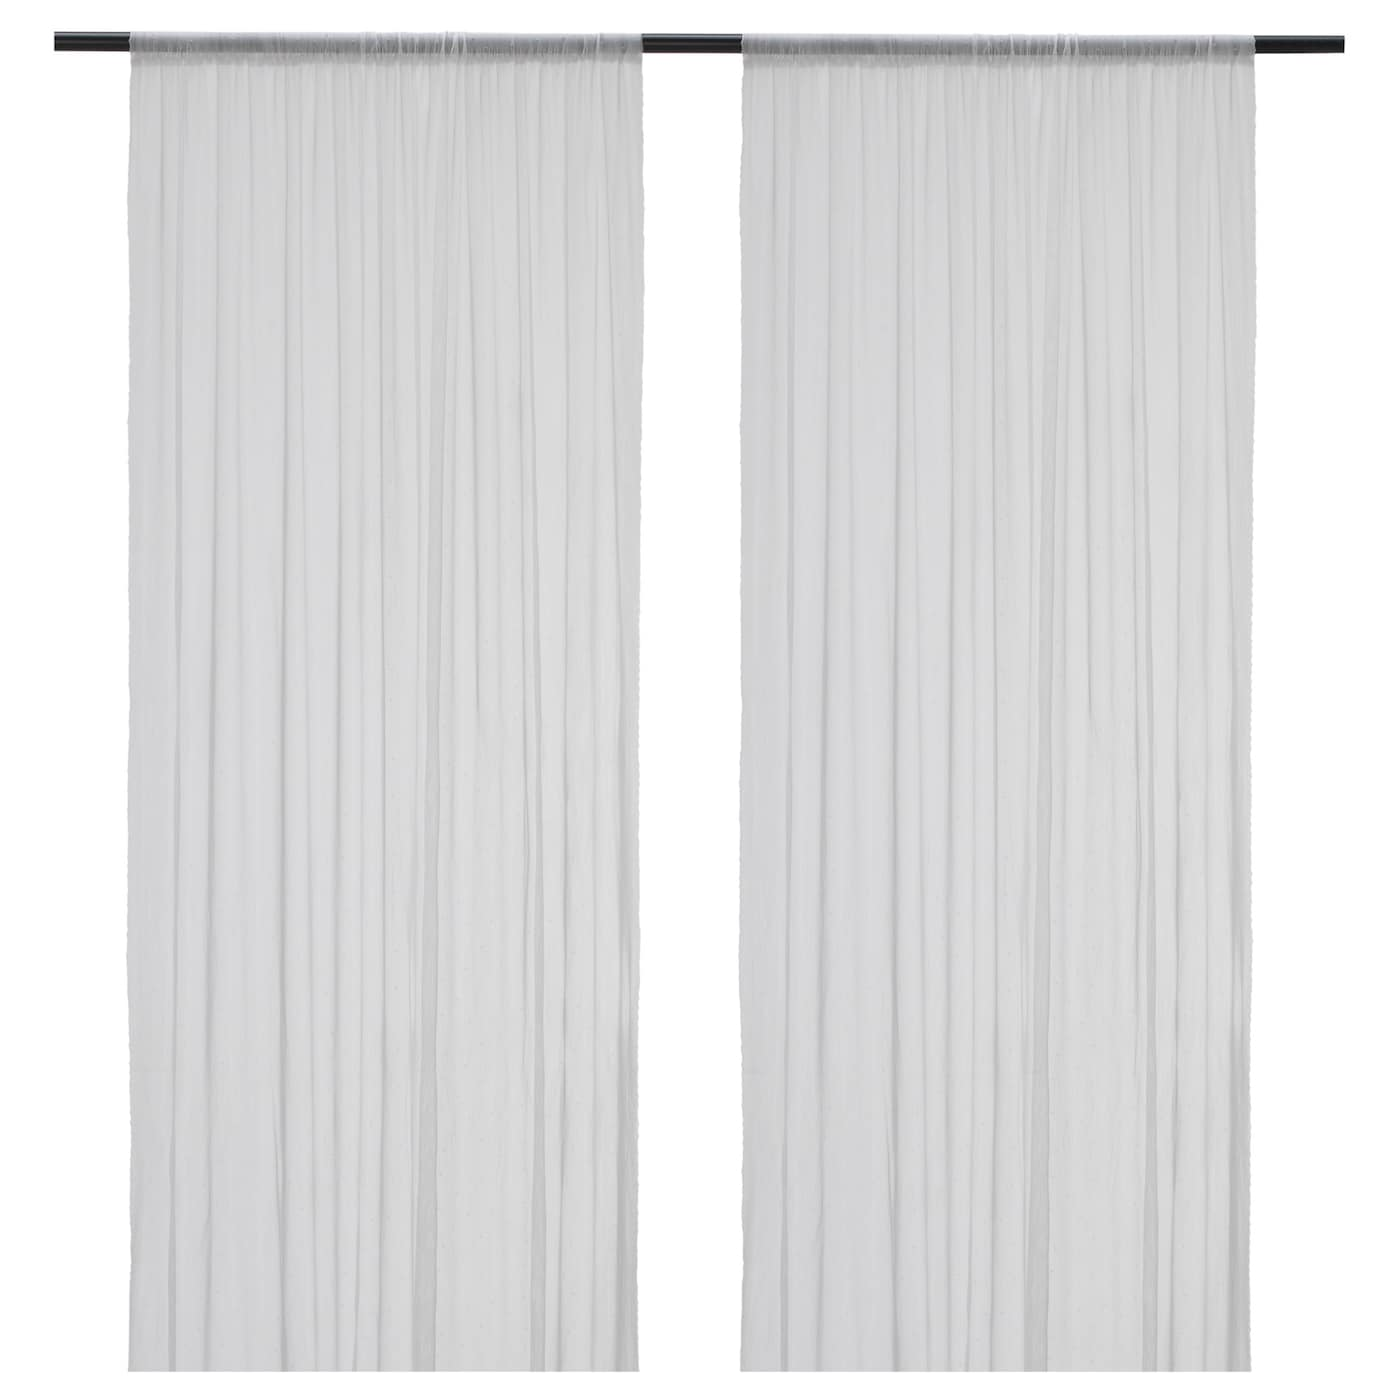 IKEA HILDRUN Sheer Curtains 1 Pair